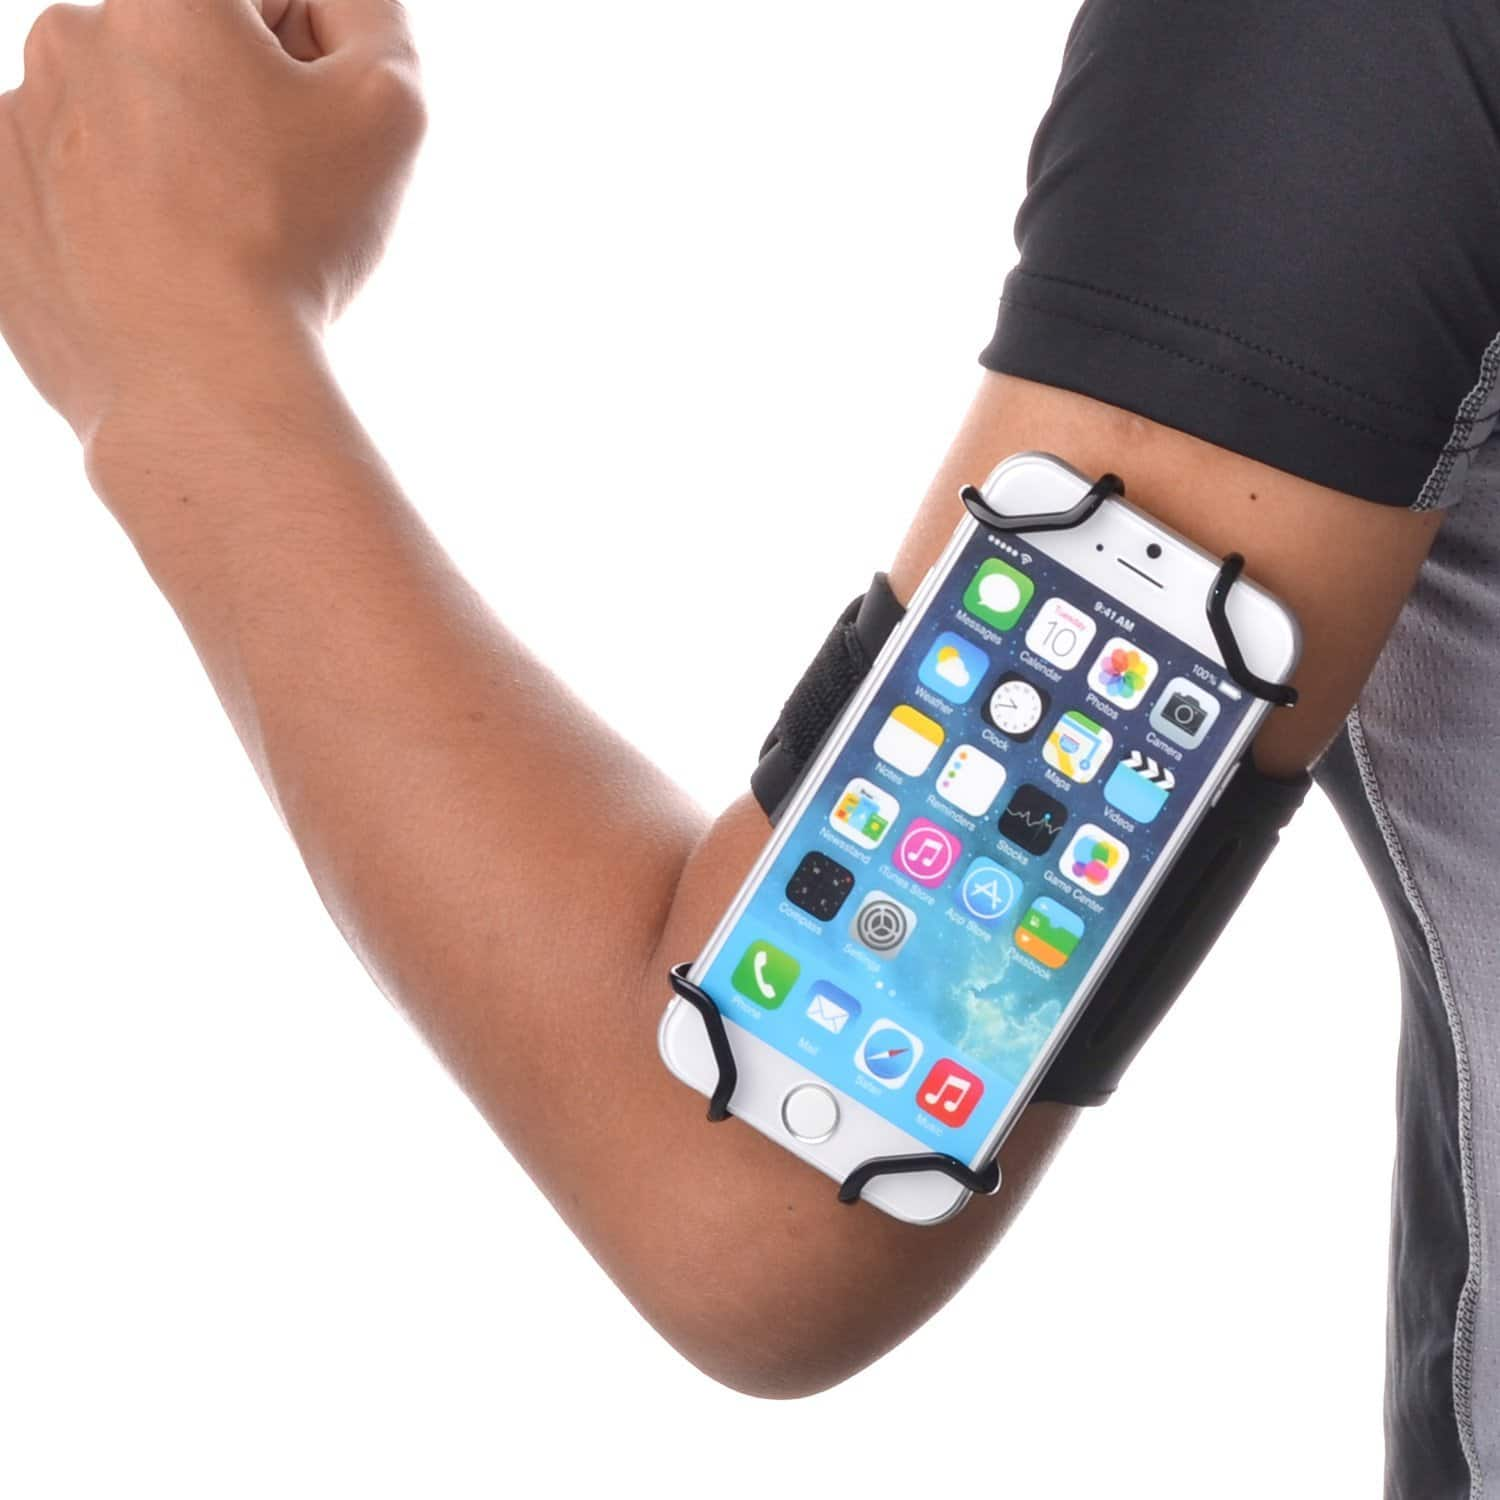 Open-face Sport Armband + Key Holder for Over 5.5 Inch Phones $9.48 @ Amazon